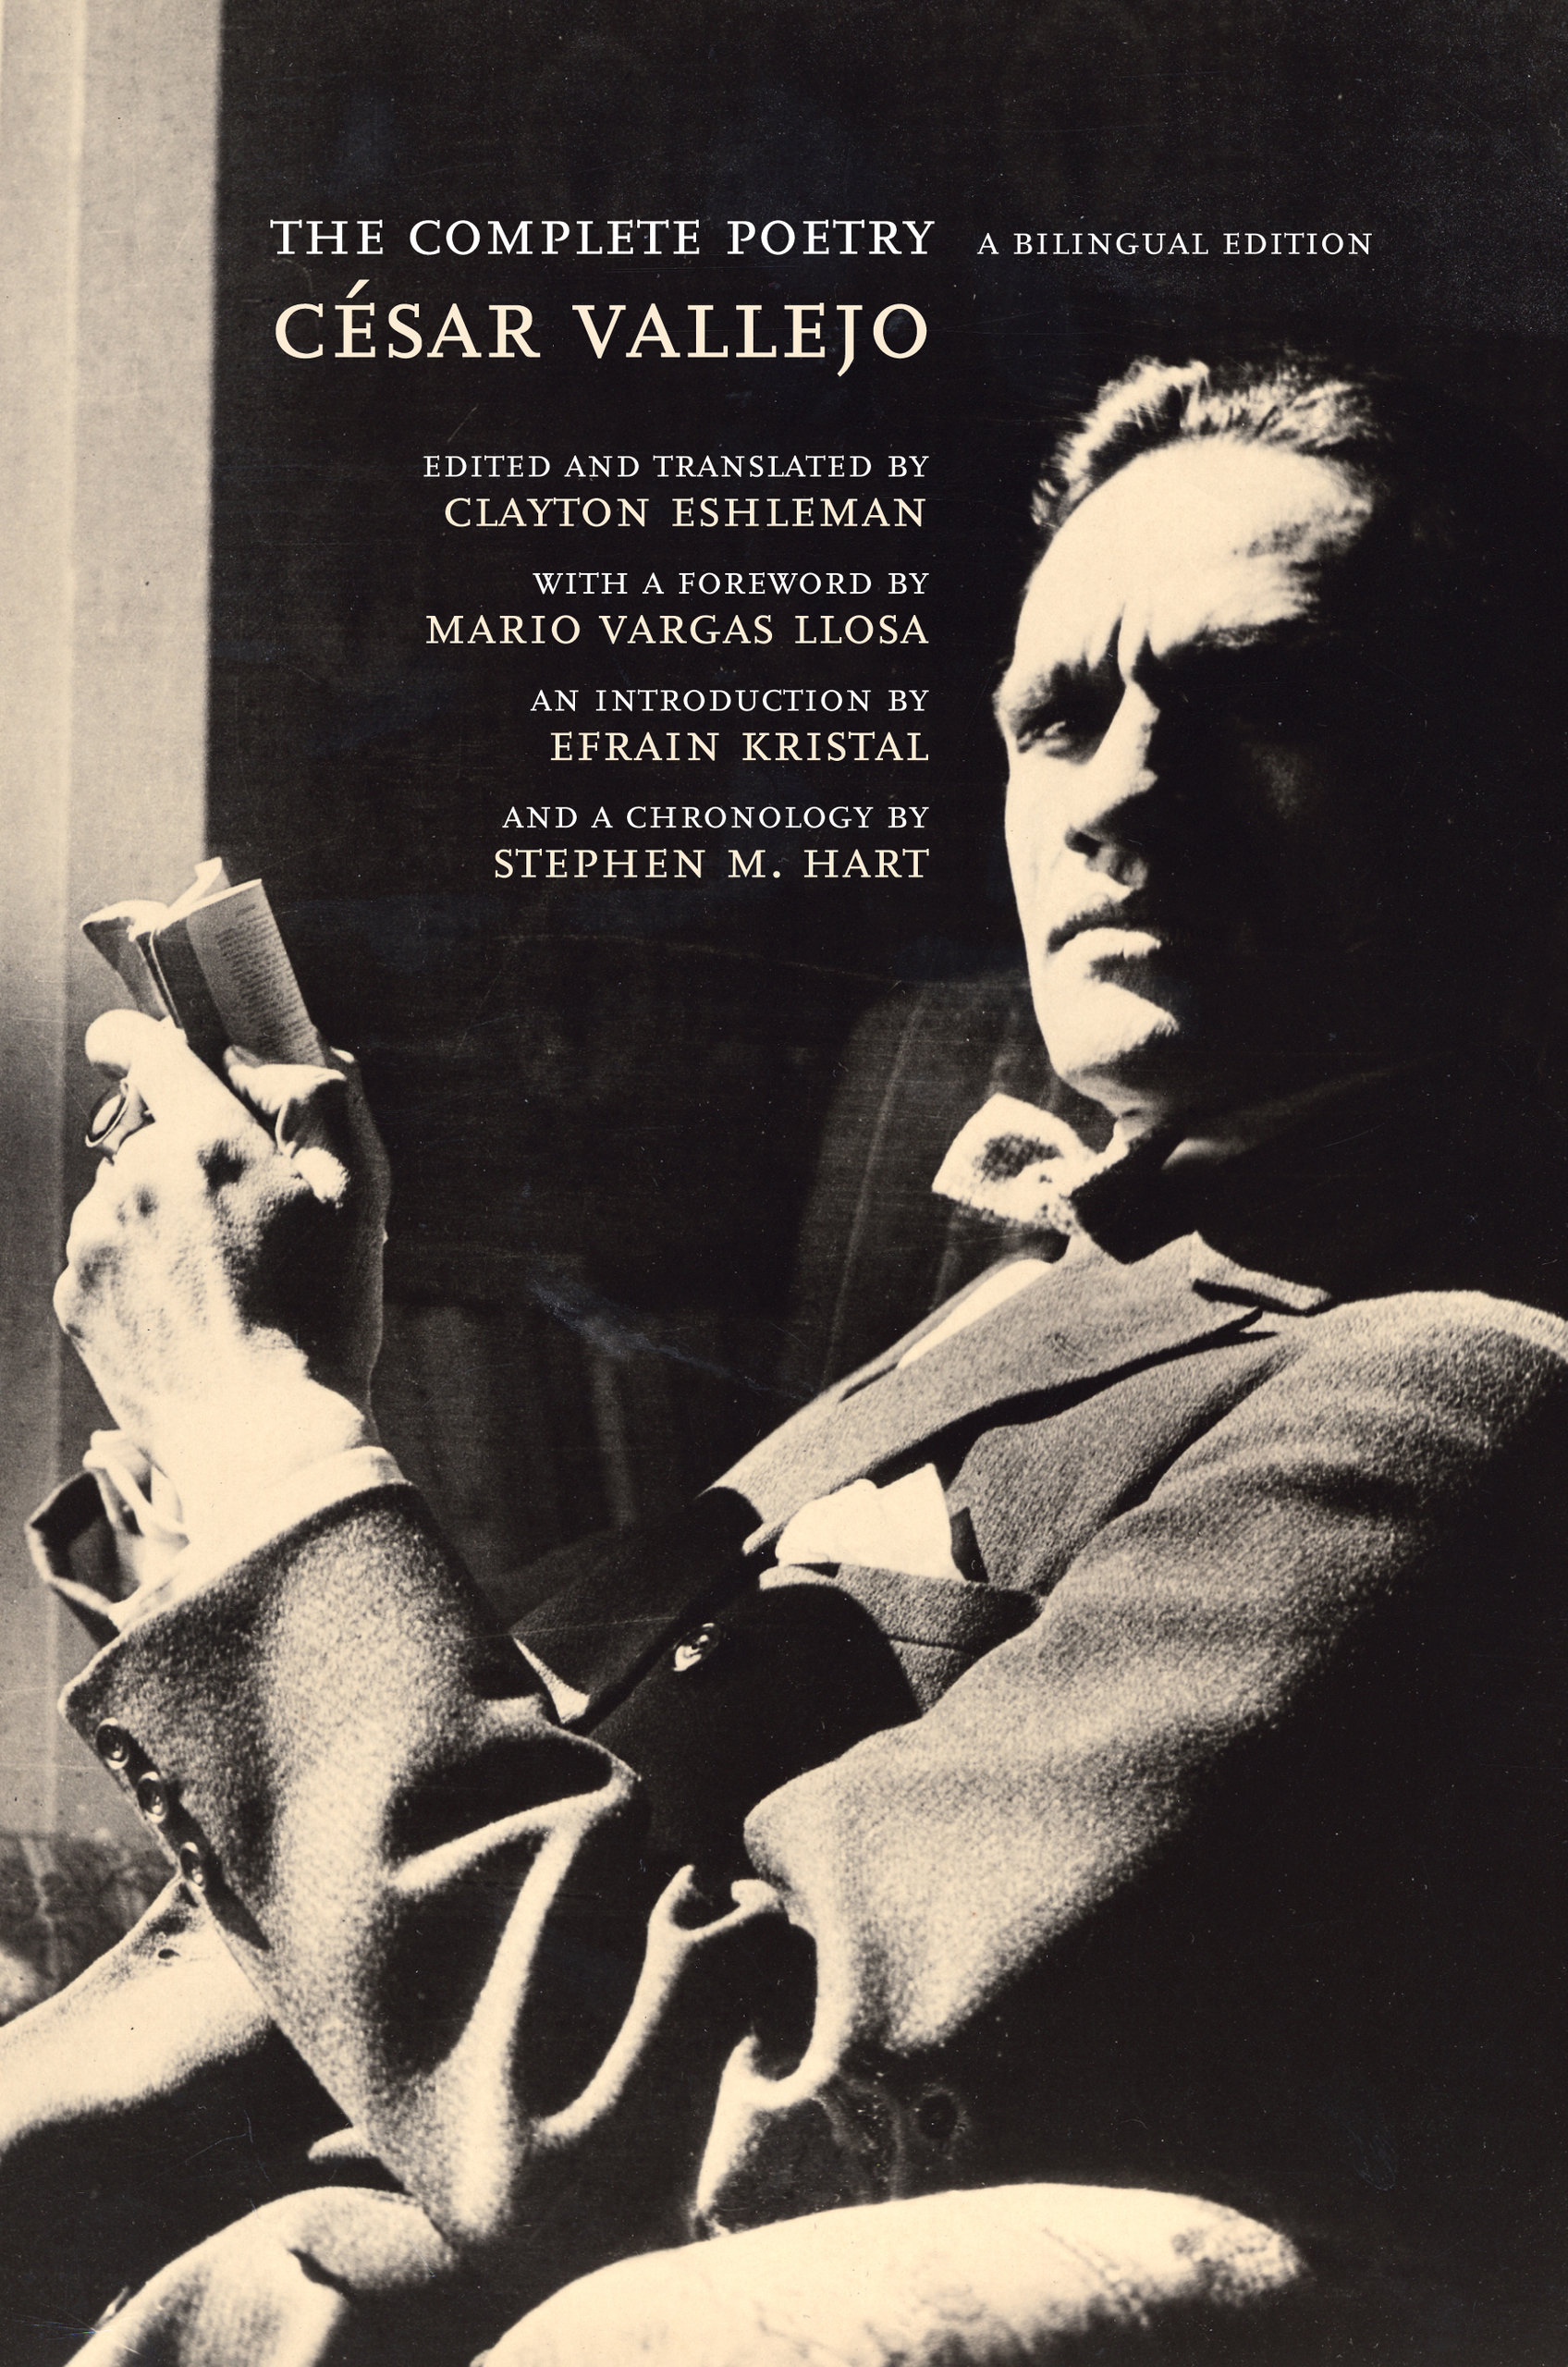 The Complete Poetry by César Vallejo, Clayton Eshleman